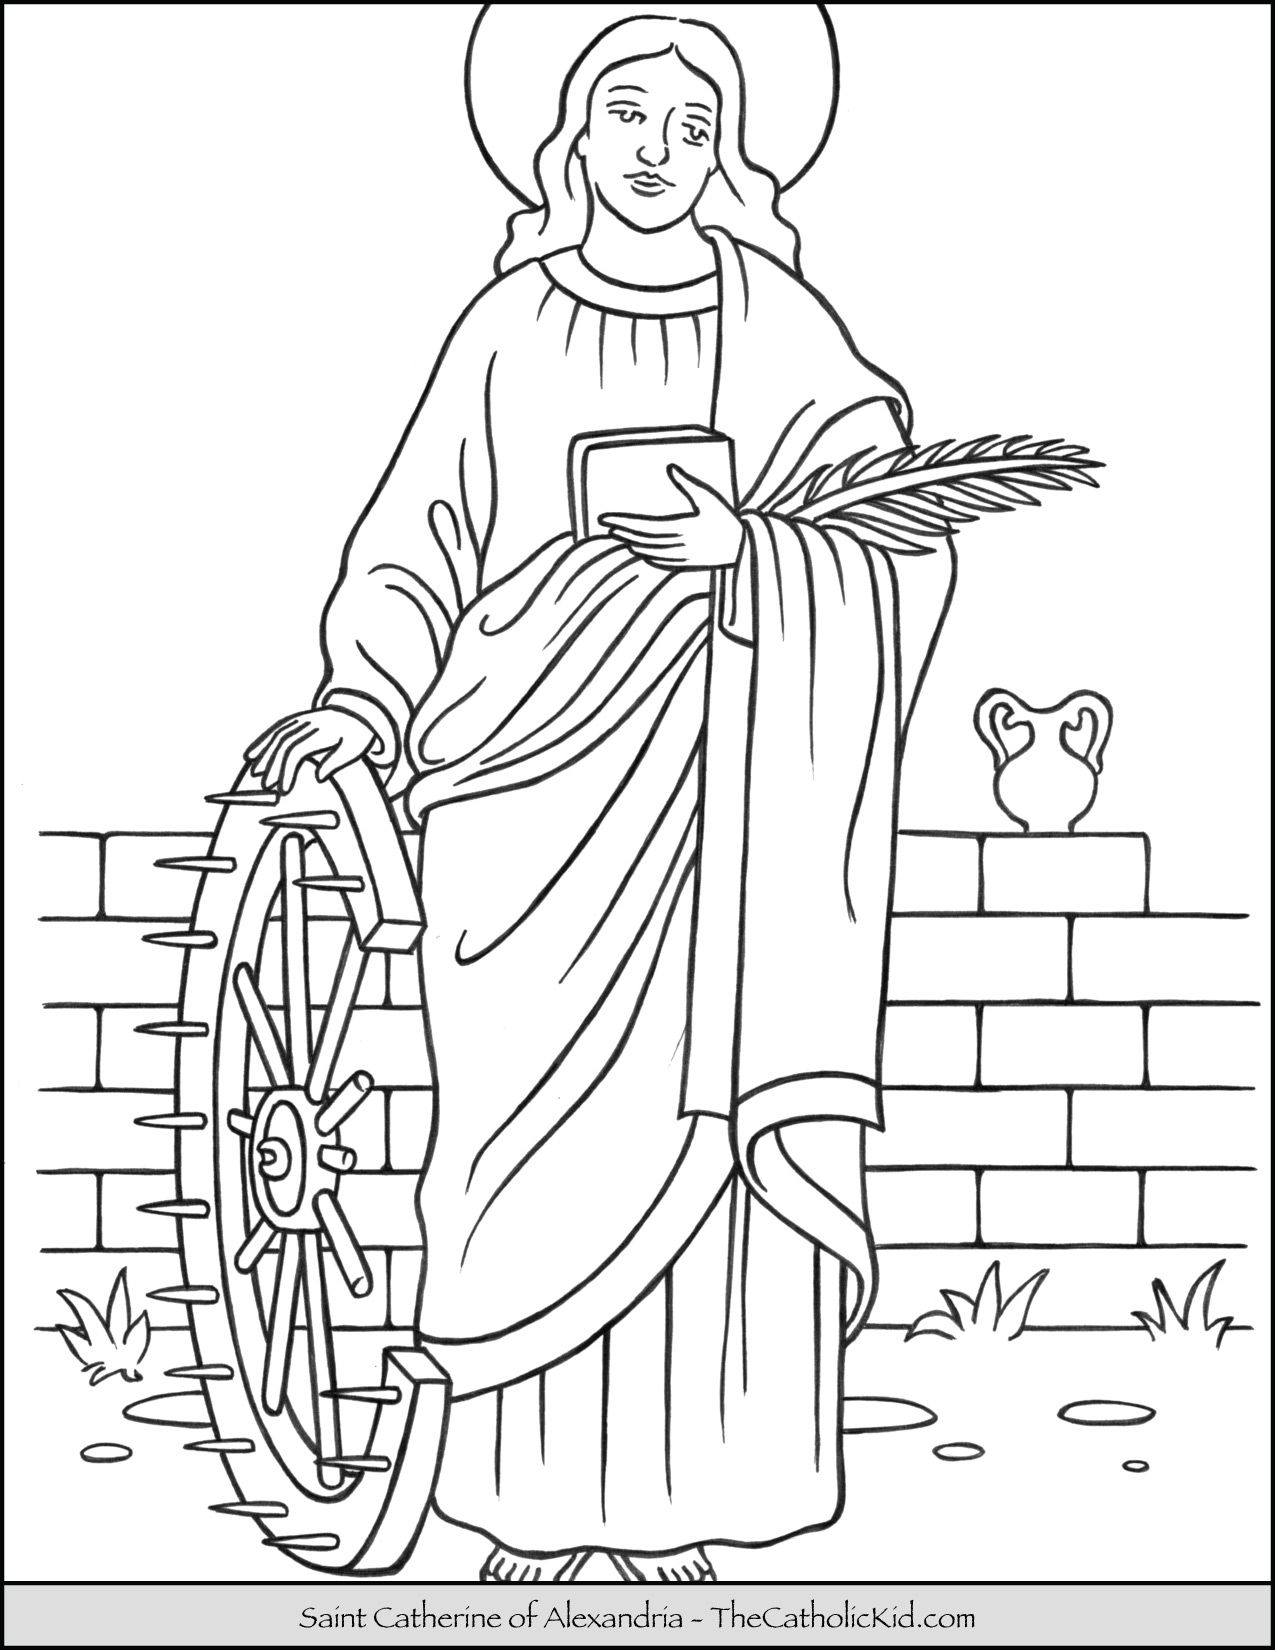 Saint Catherine Of Alexandria Coloring Page Thecatholickid Com